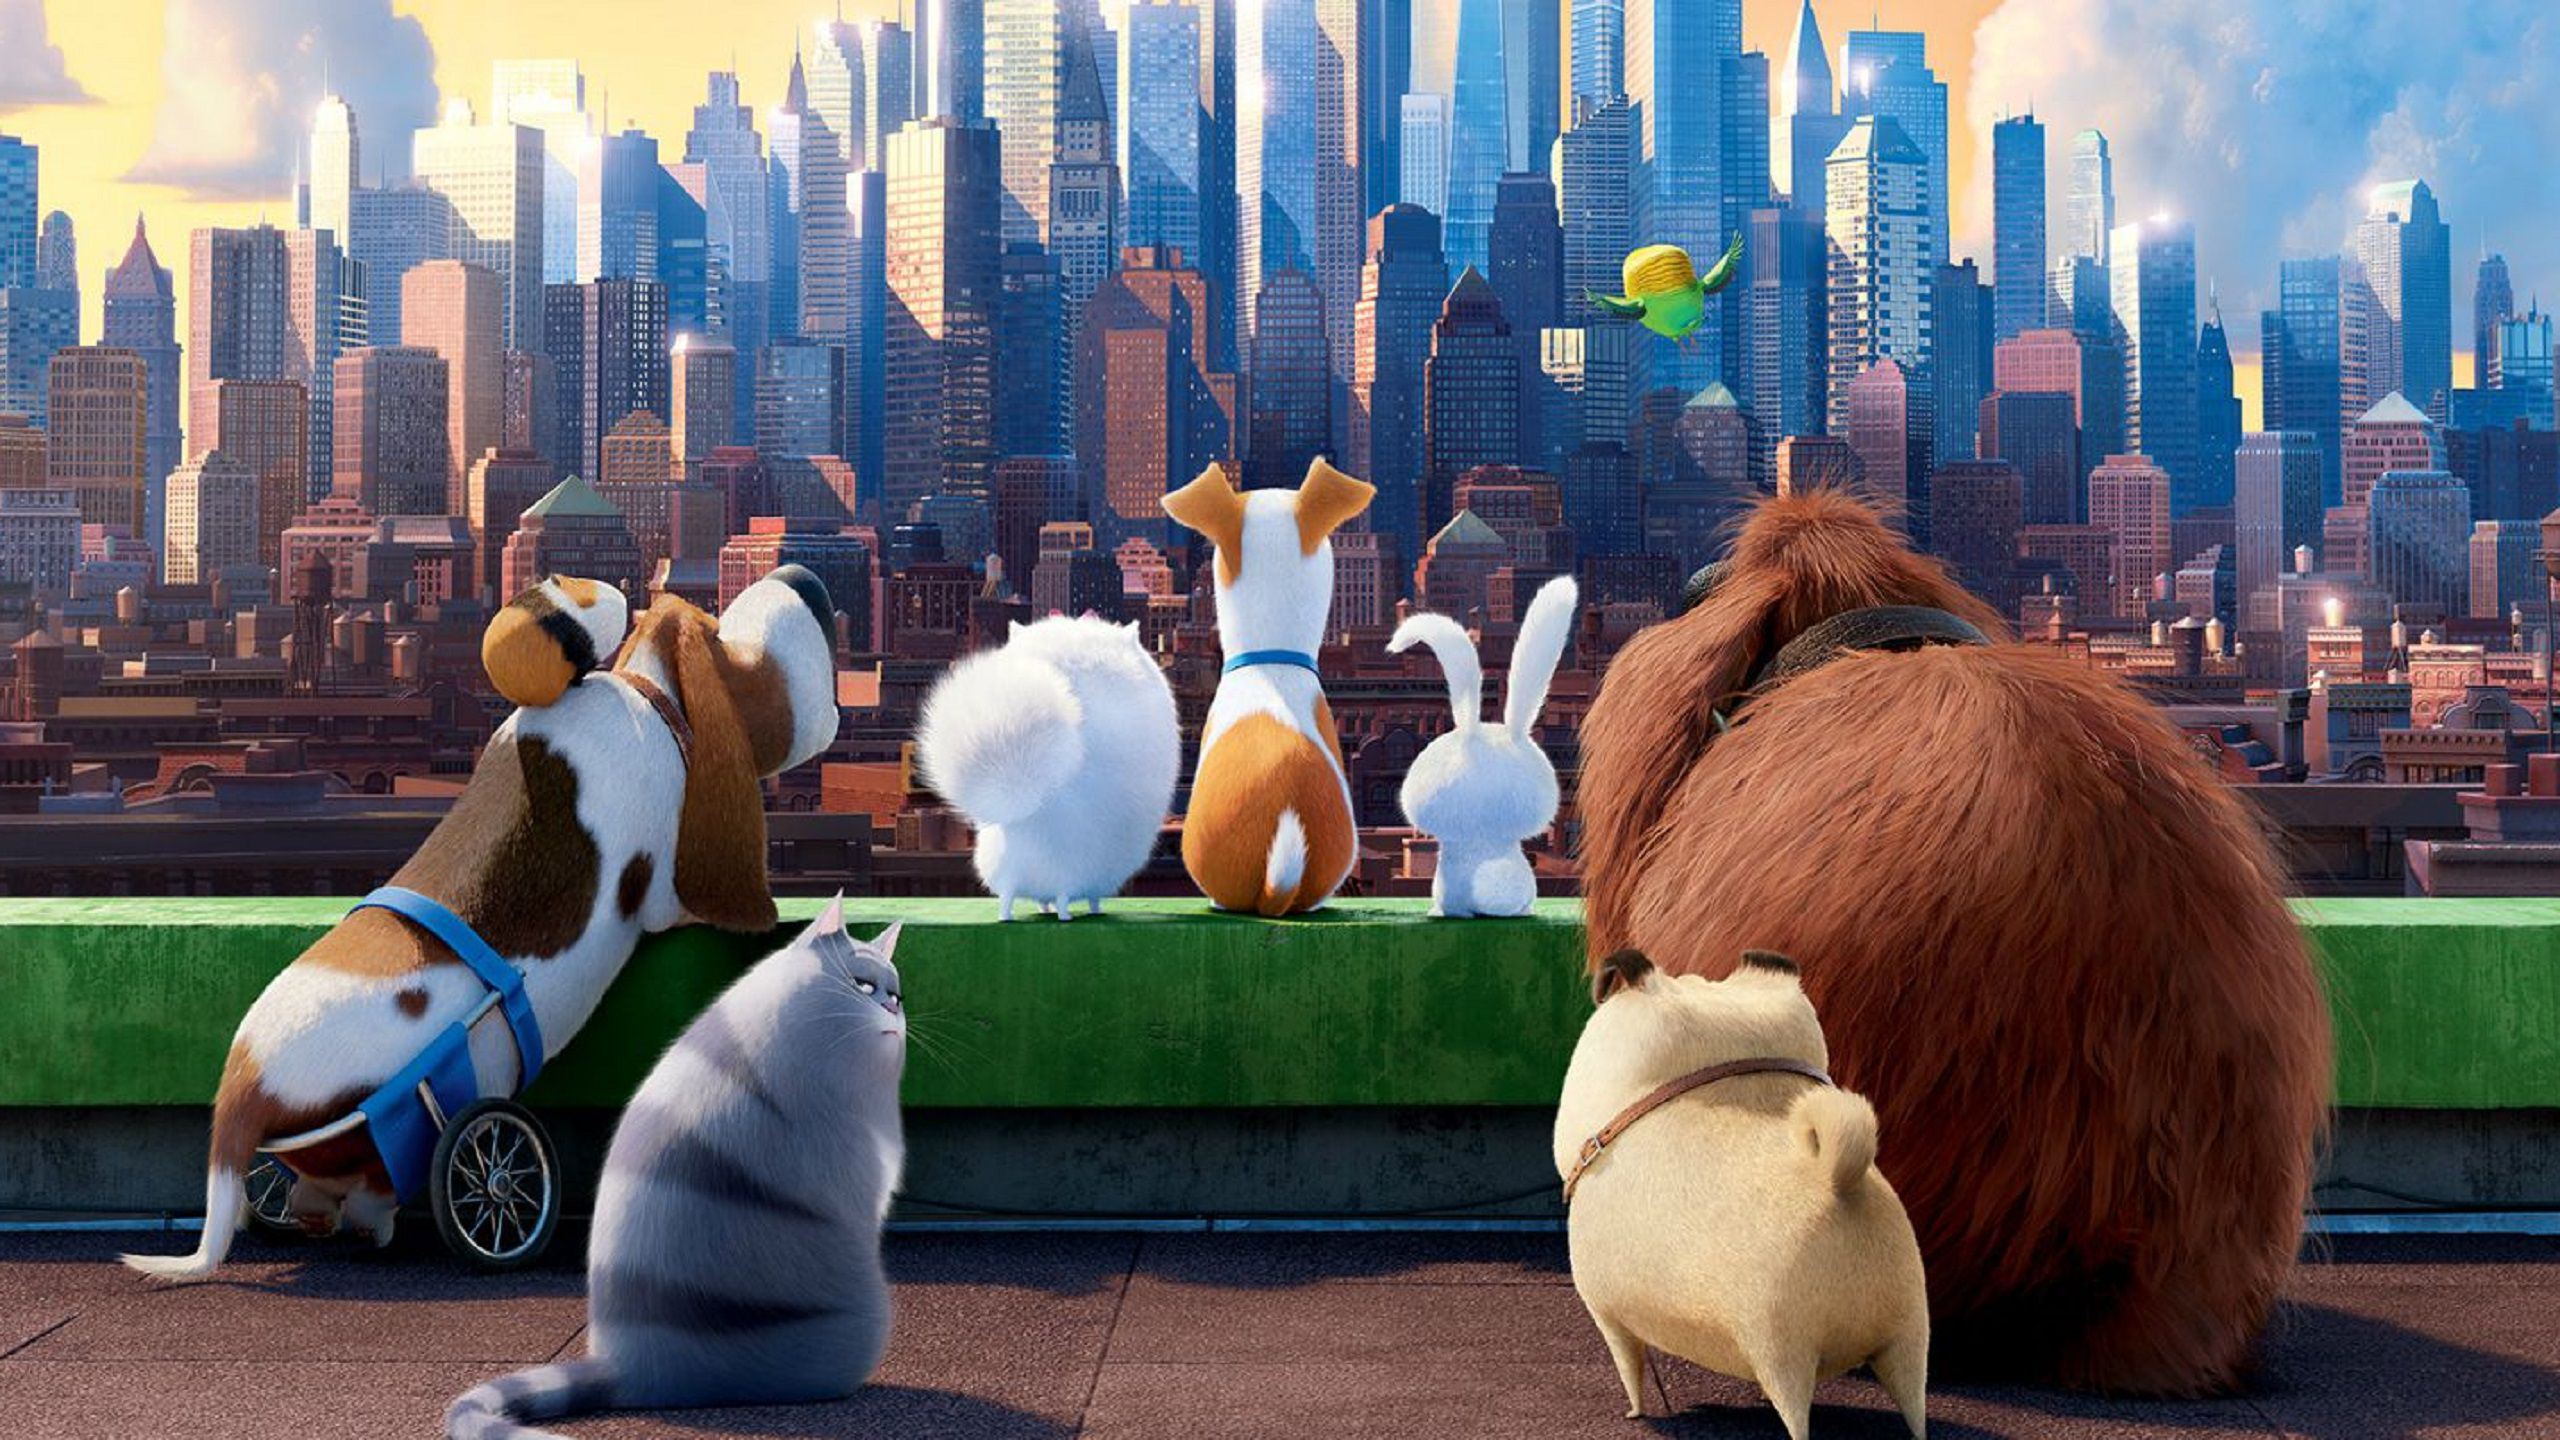 The Secret Life of Pets 2 (2019) - skyscrapers